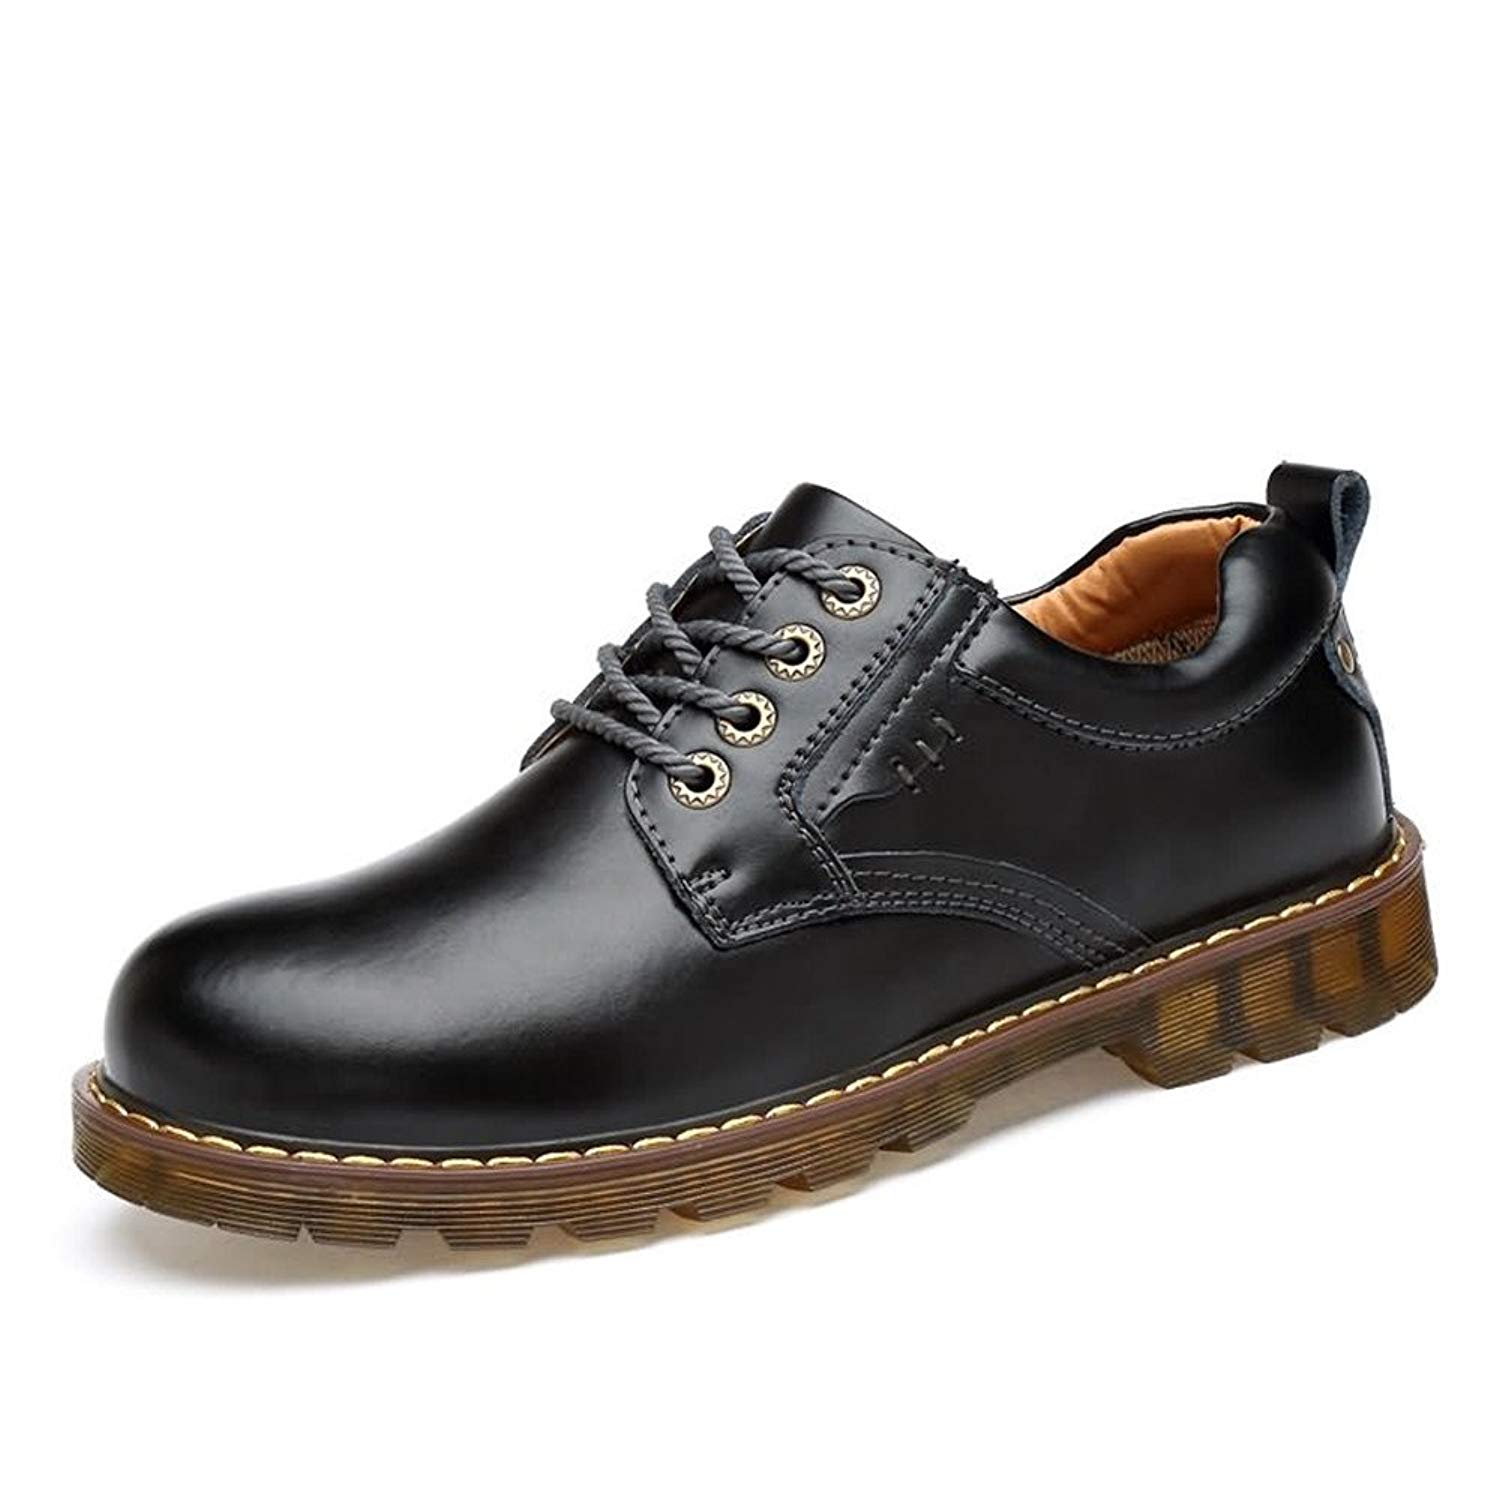 Muyin Men's Oxfords Flat Heel Solid Color Lace up PU Leather Formal Shoes